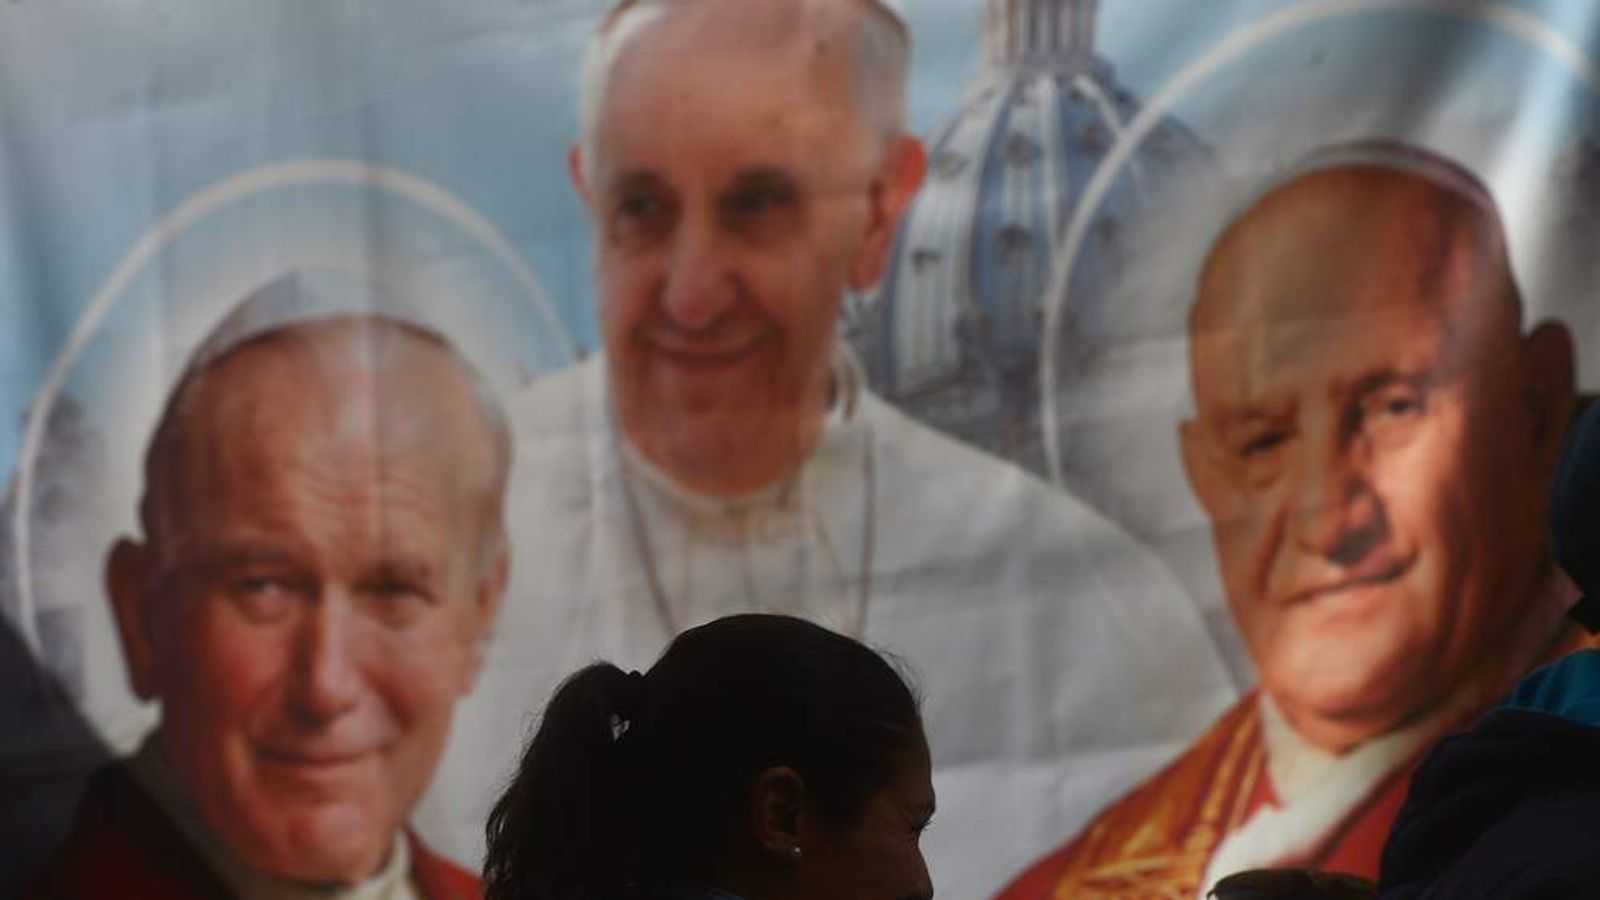 A poster shows the late Popes John XXIII and John Paul II ahead of their canonisation.